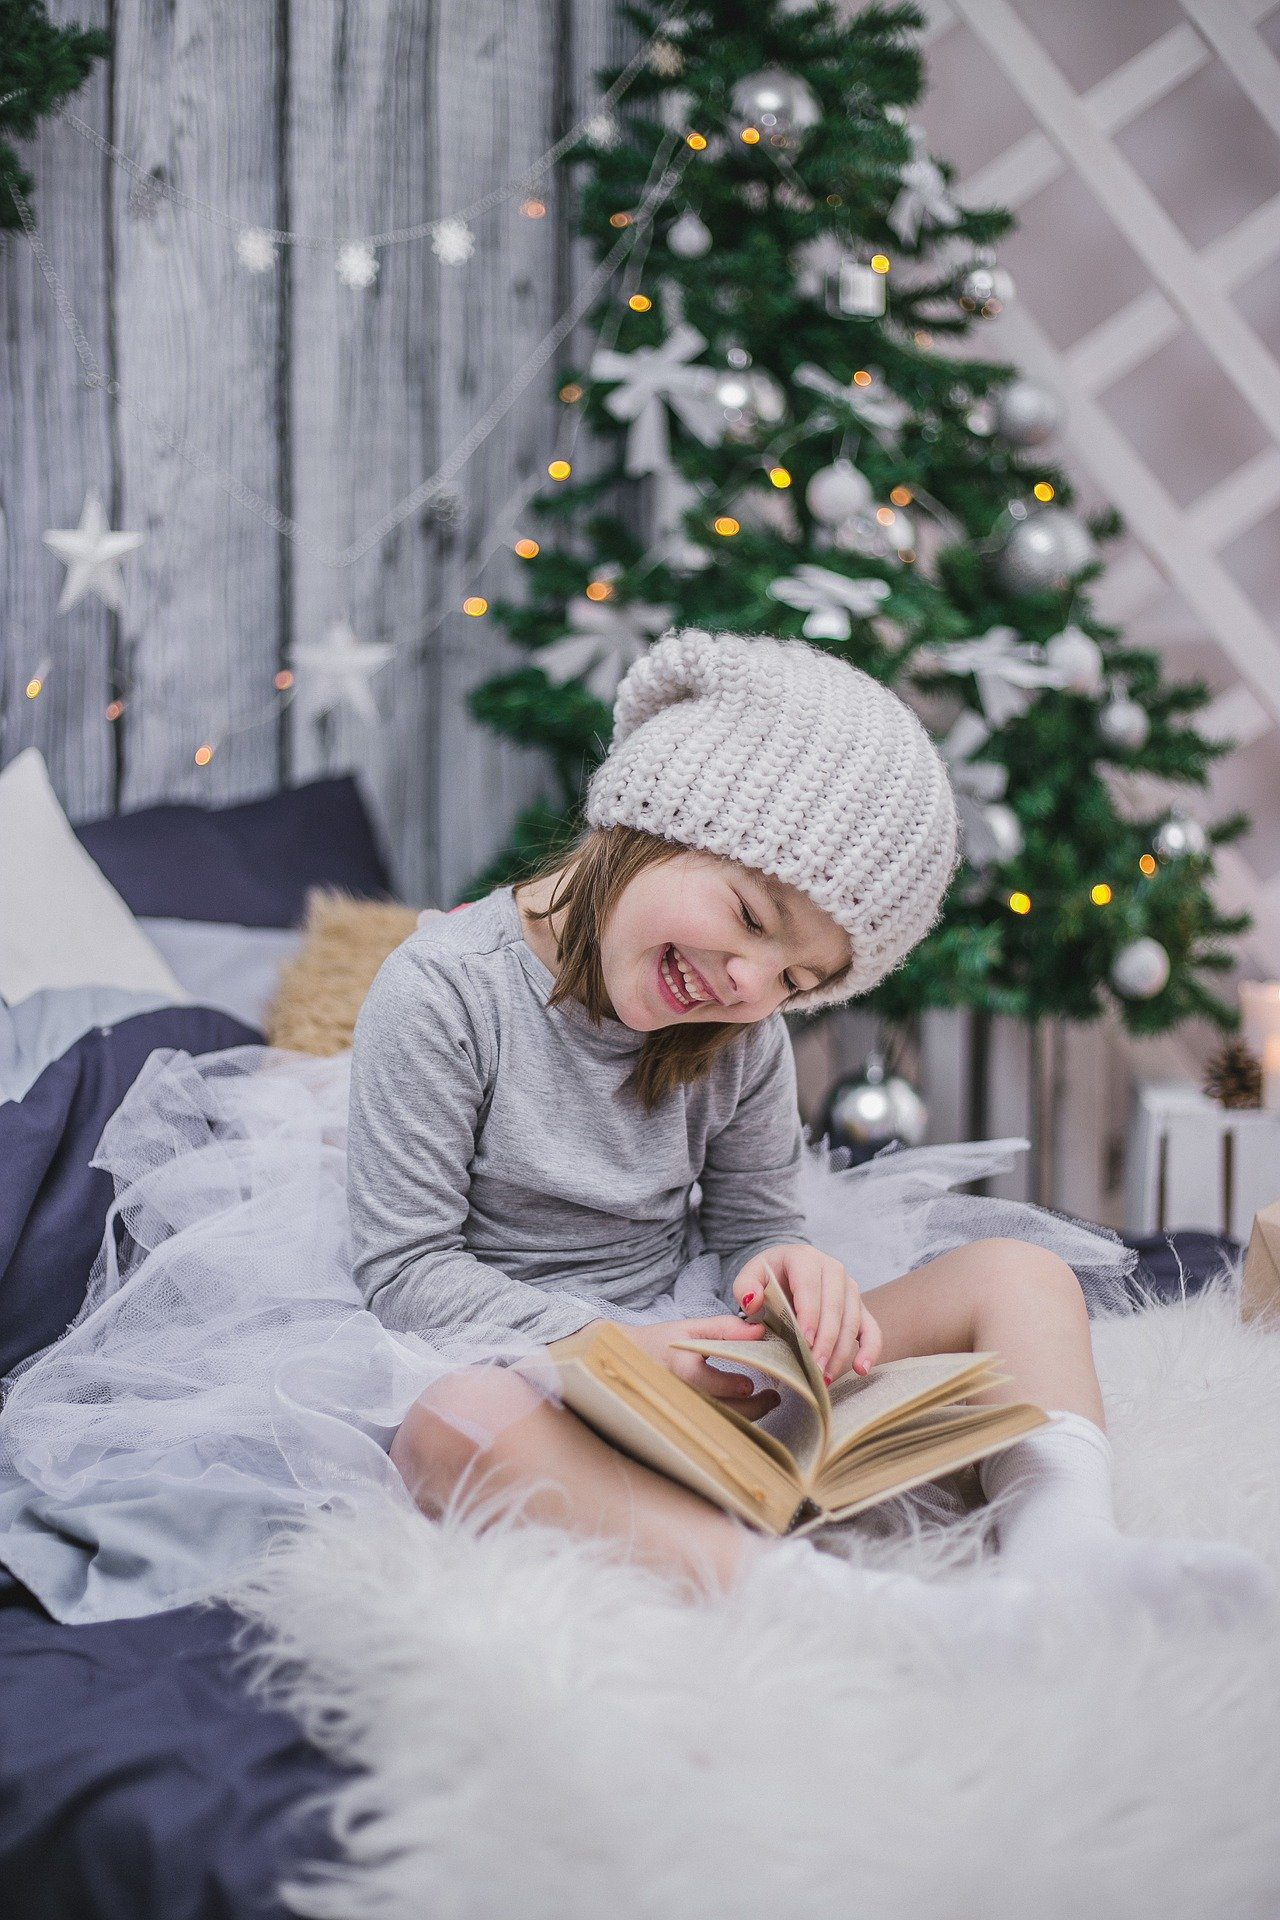 11 Ways To Make Christmas Magical For Children 1